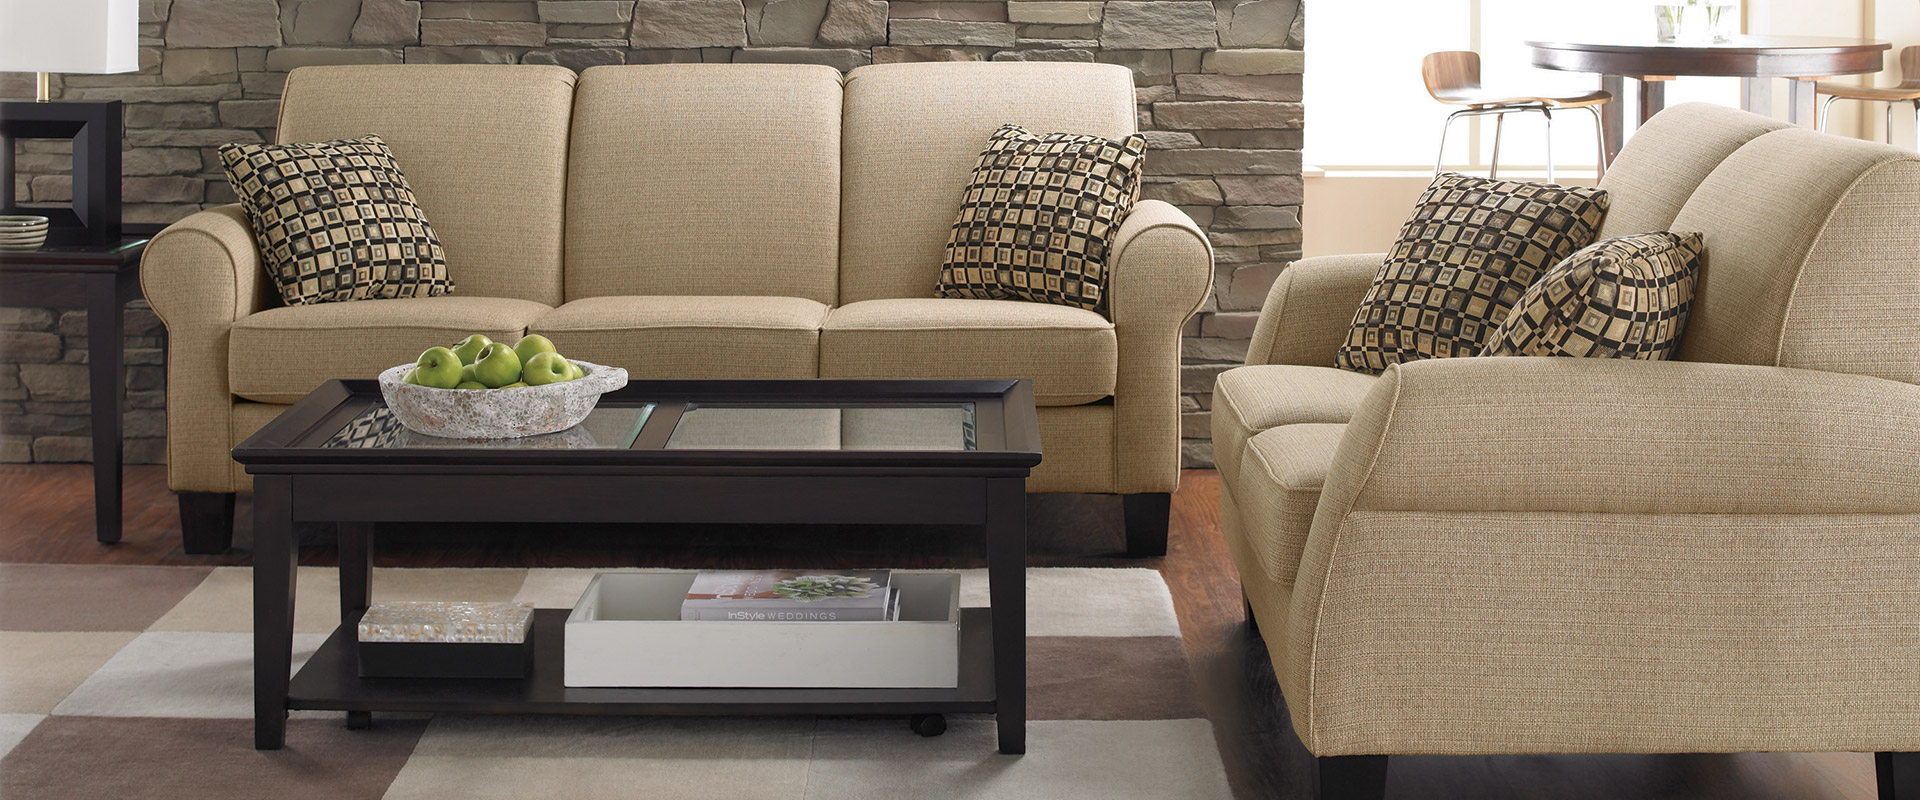 Sofas Couches Sectional Leather